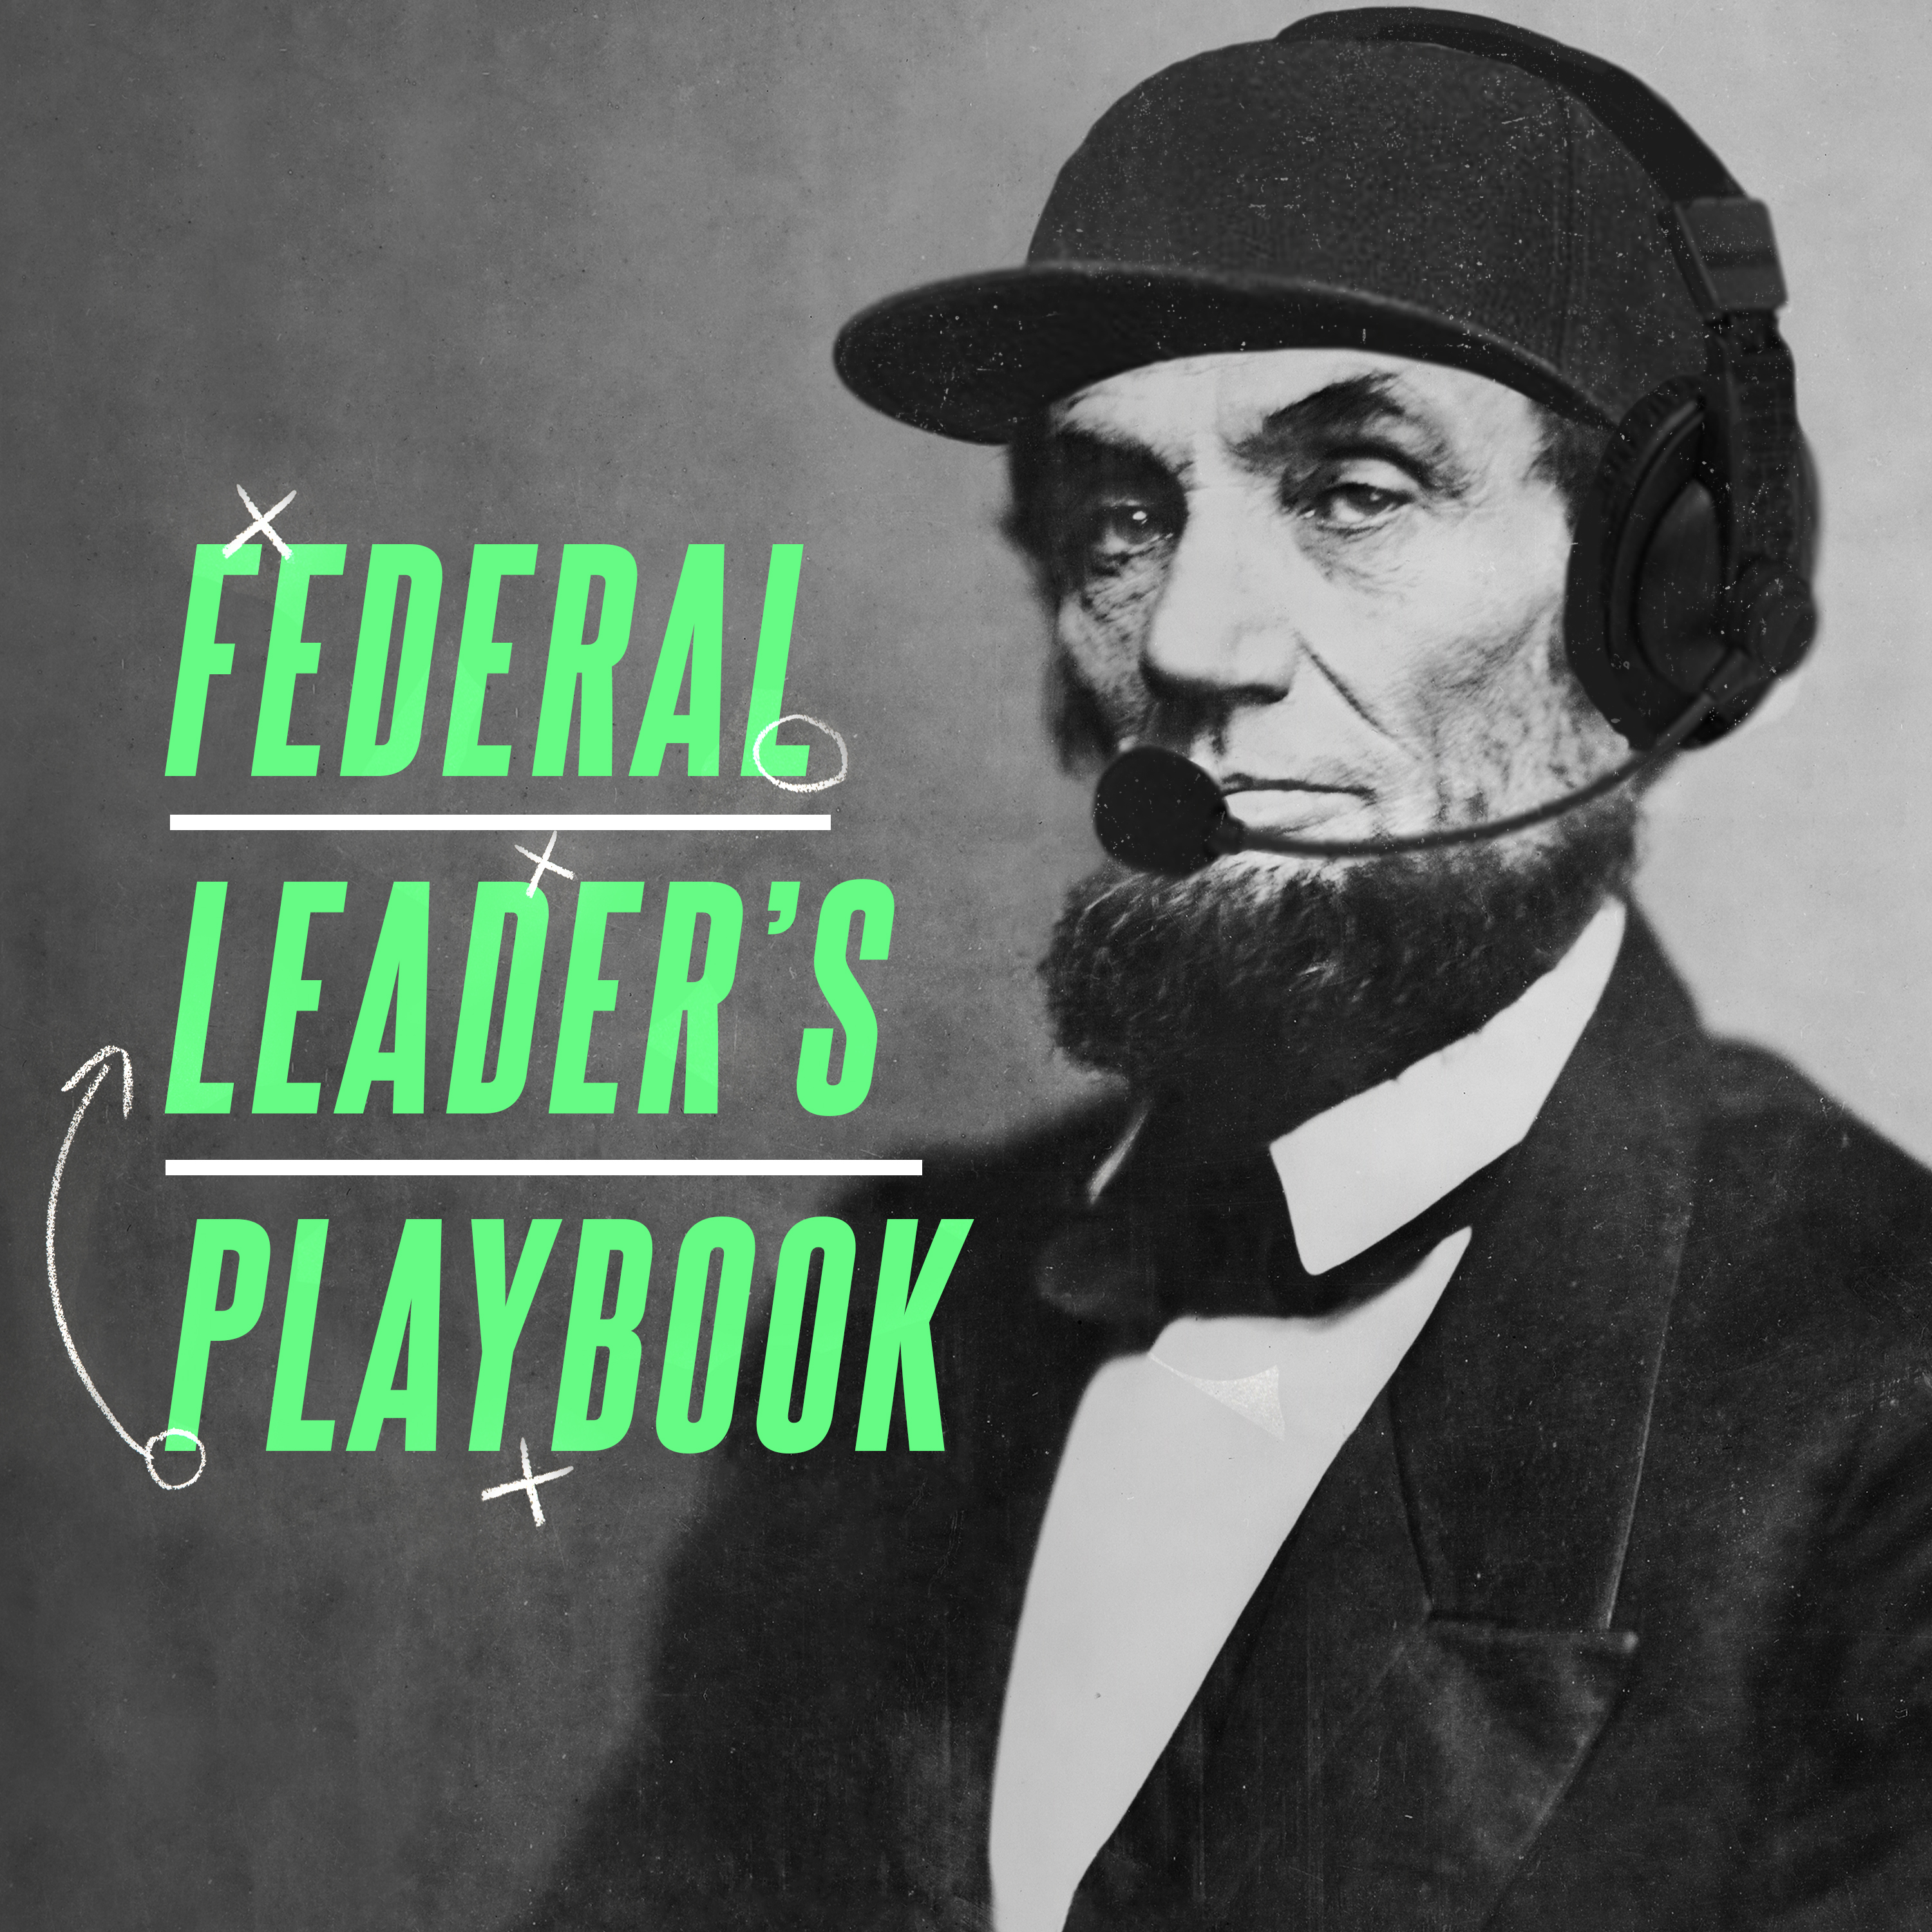 Federal Leader's Playbook show art